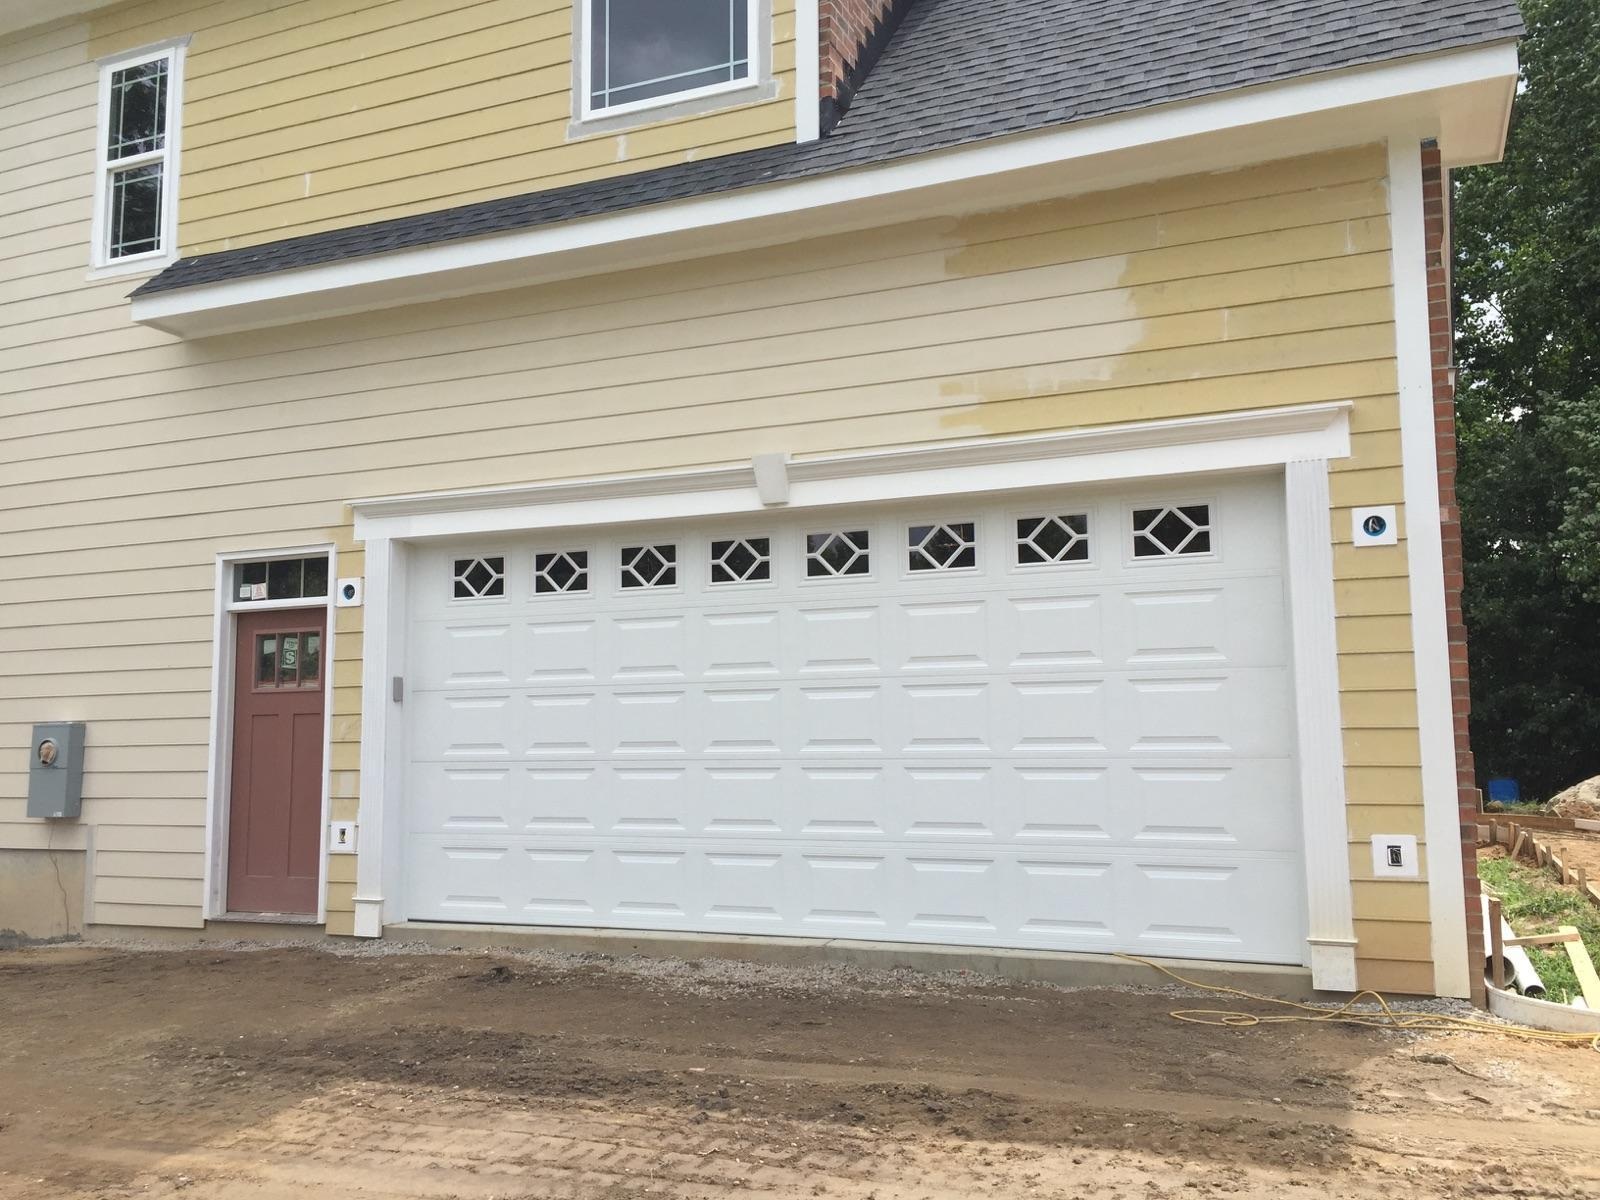 1200 #847047 All American Overhead Garage Door Inc. In Wendell NC 27591  image Overhead Garage Doors Residential Reviews 37131600